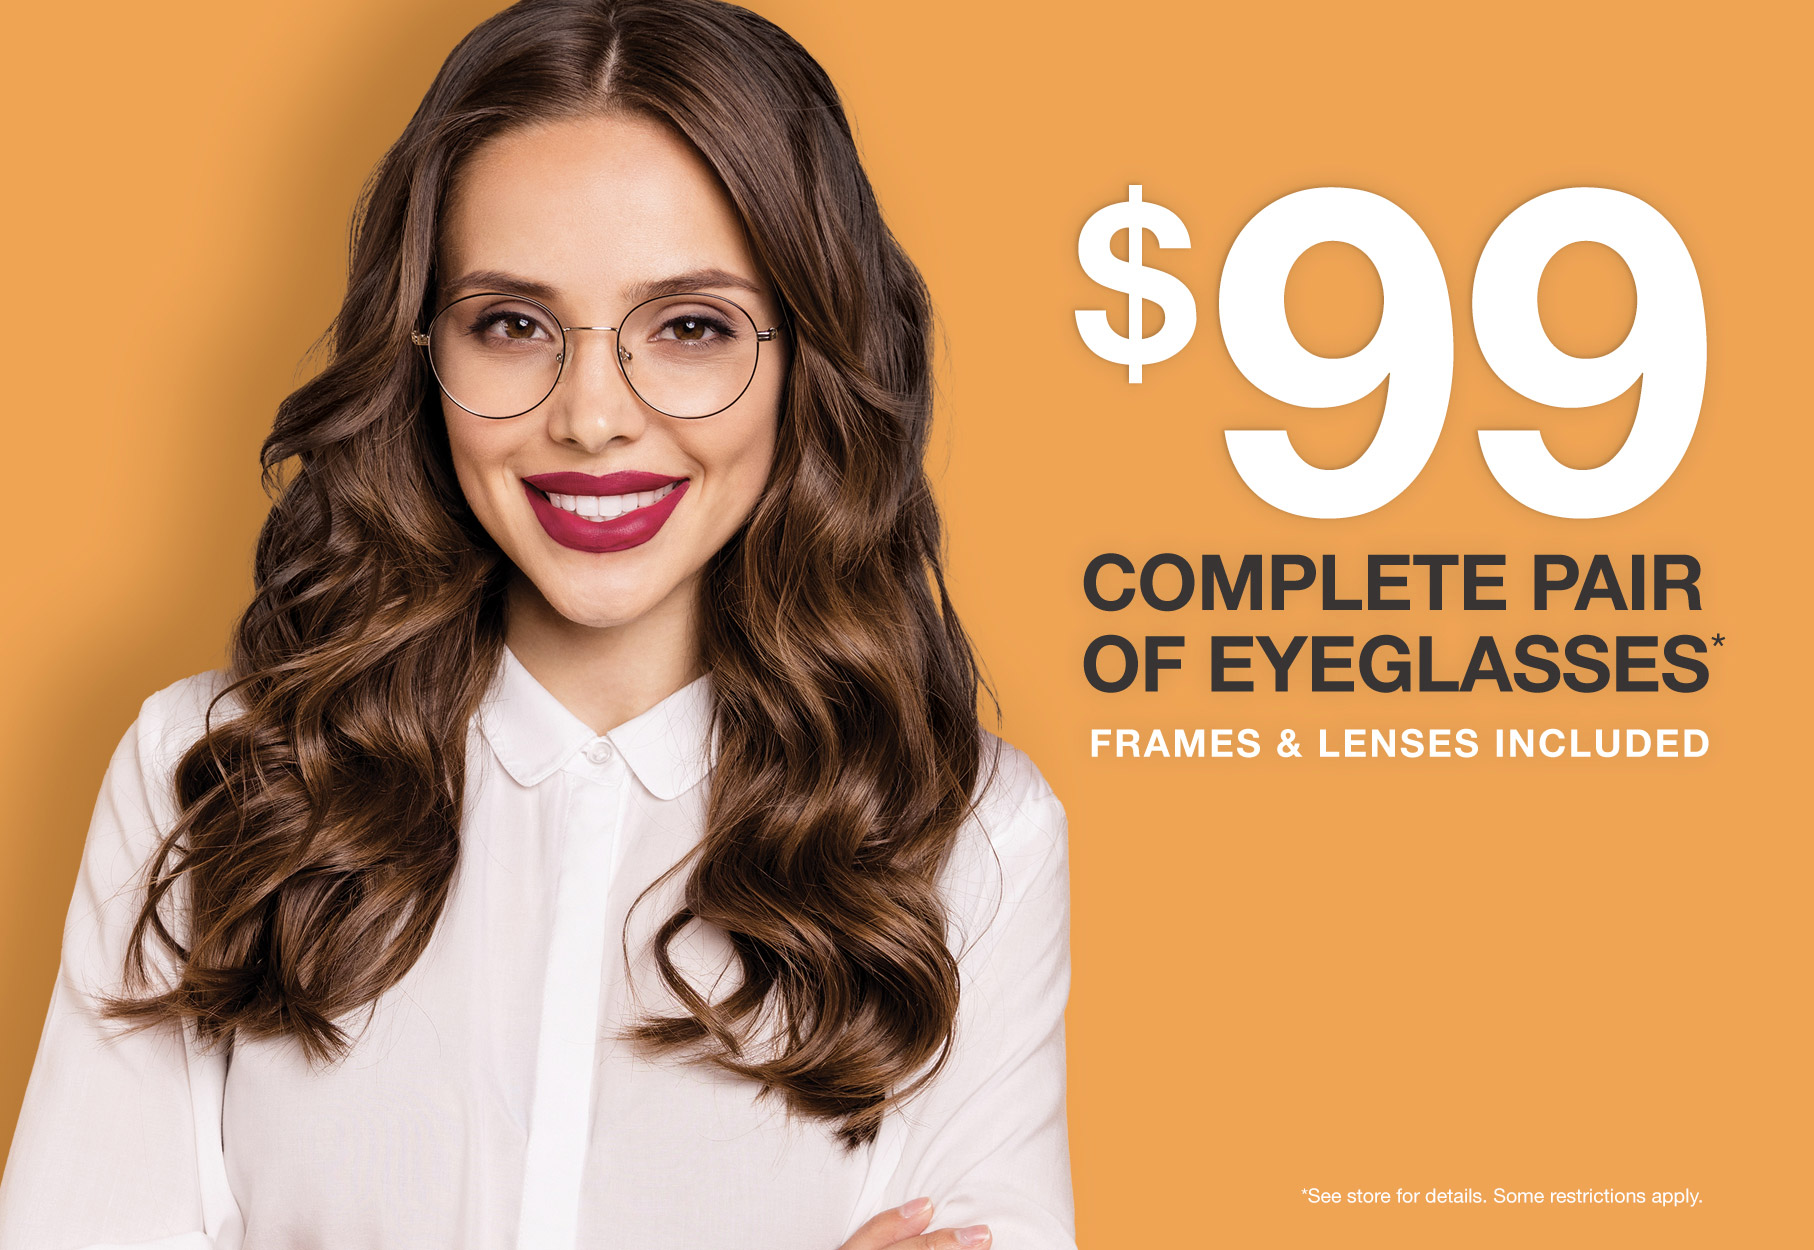 $99 Complete Pair of Eyeglasses - Frames and Lenses Included